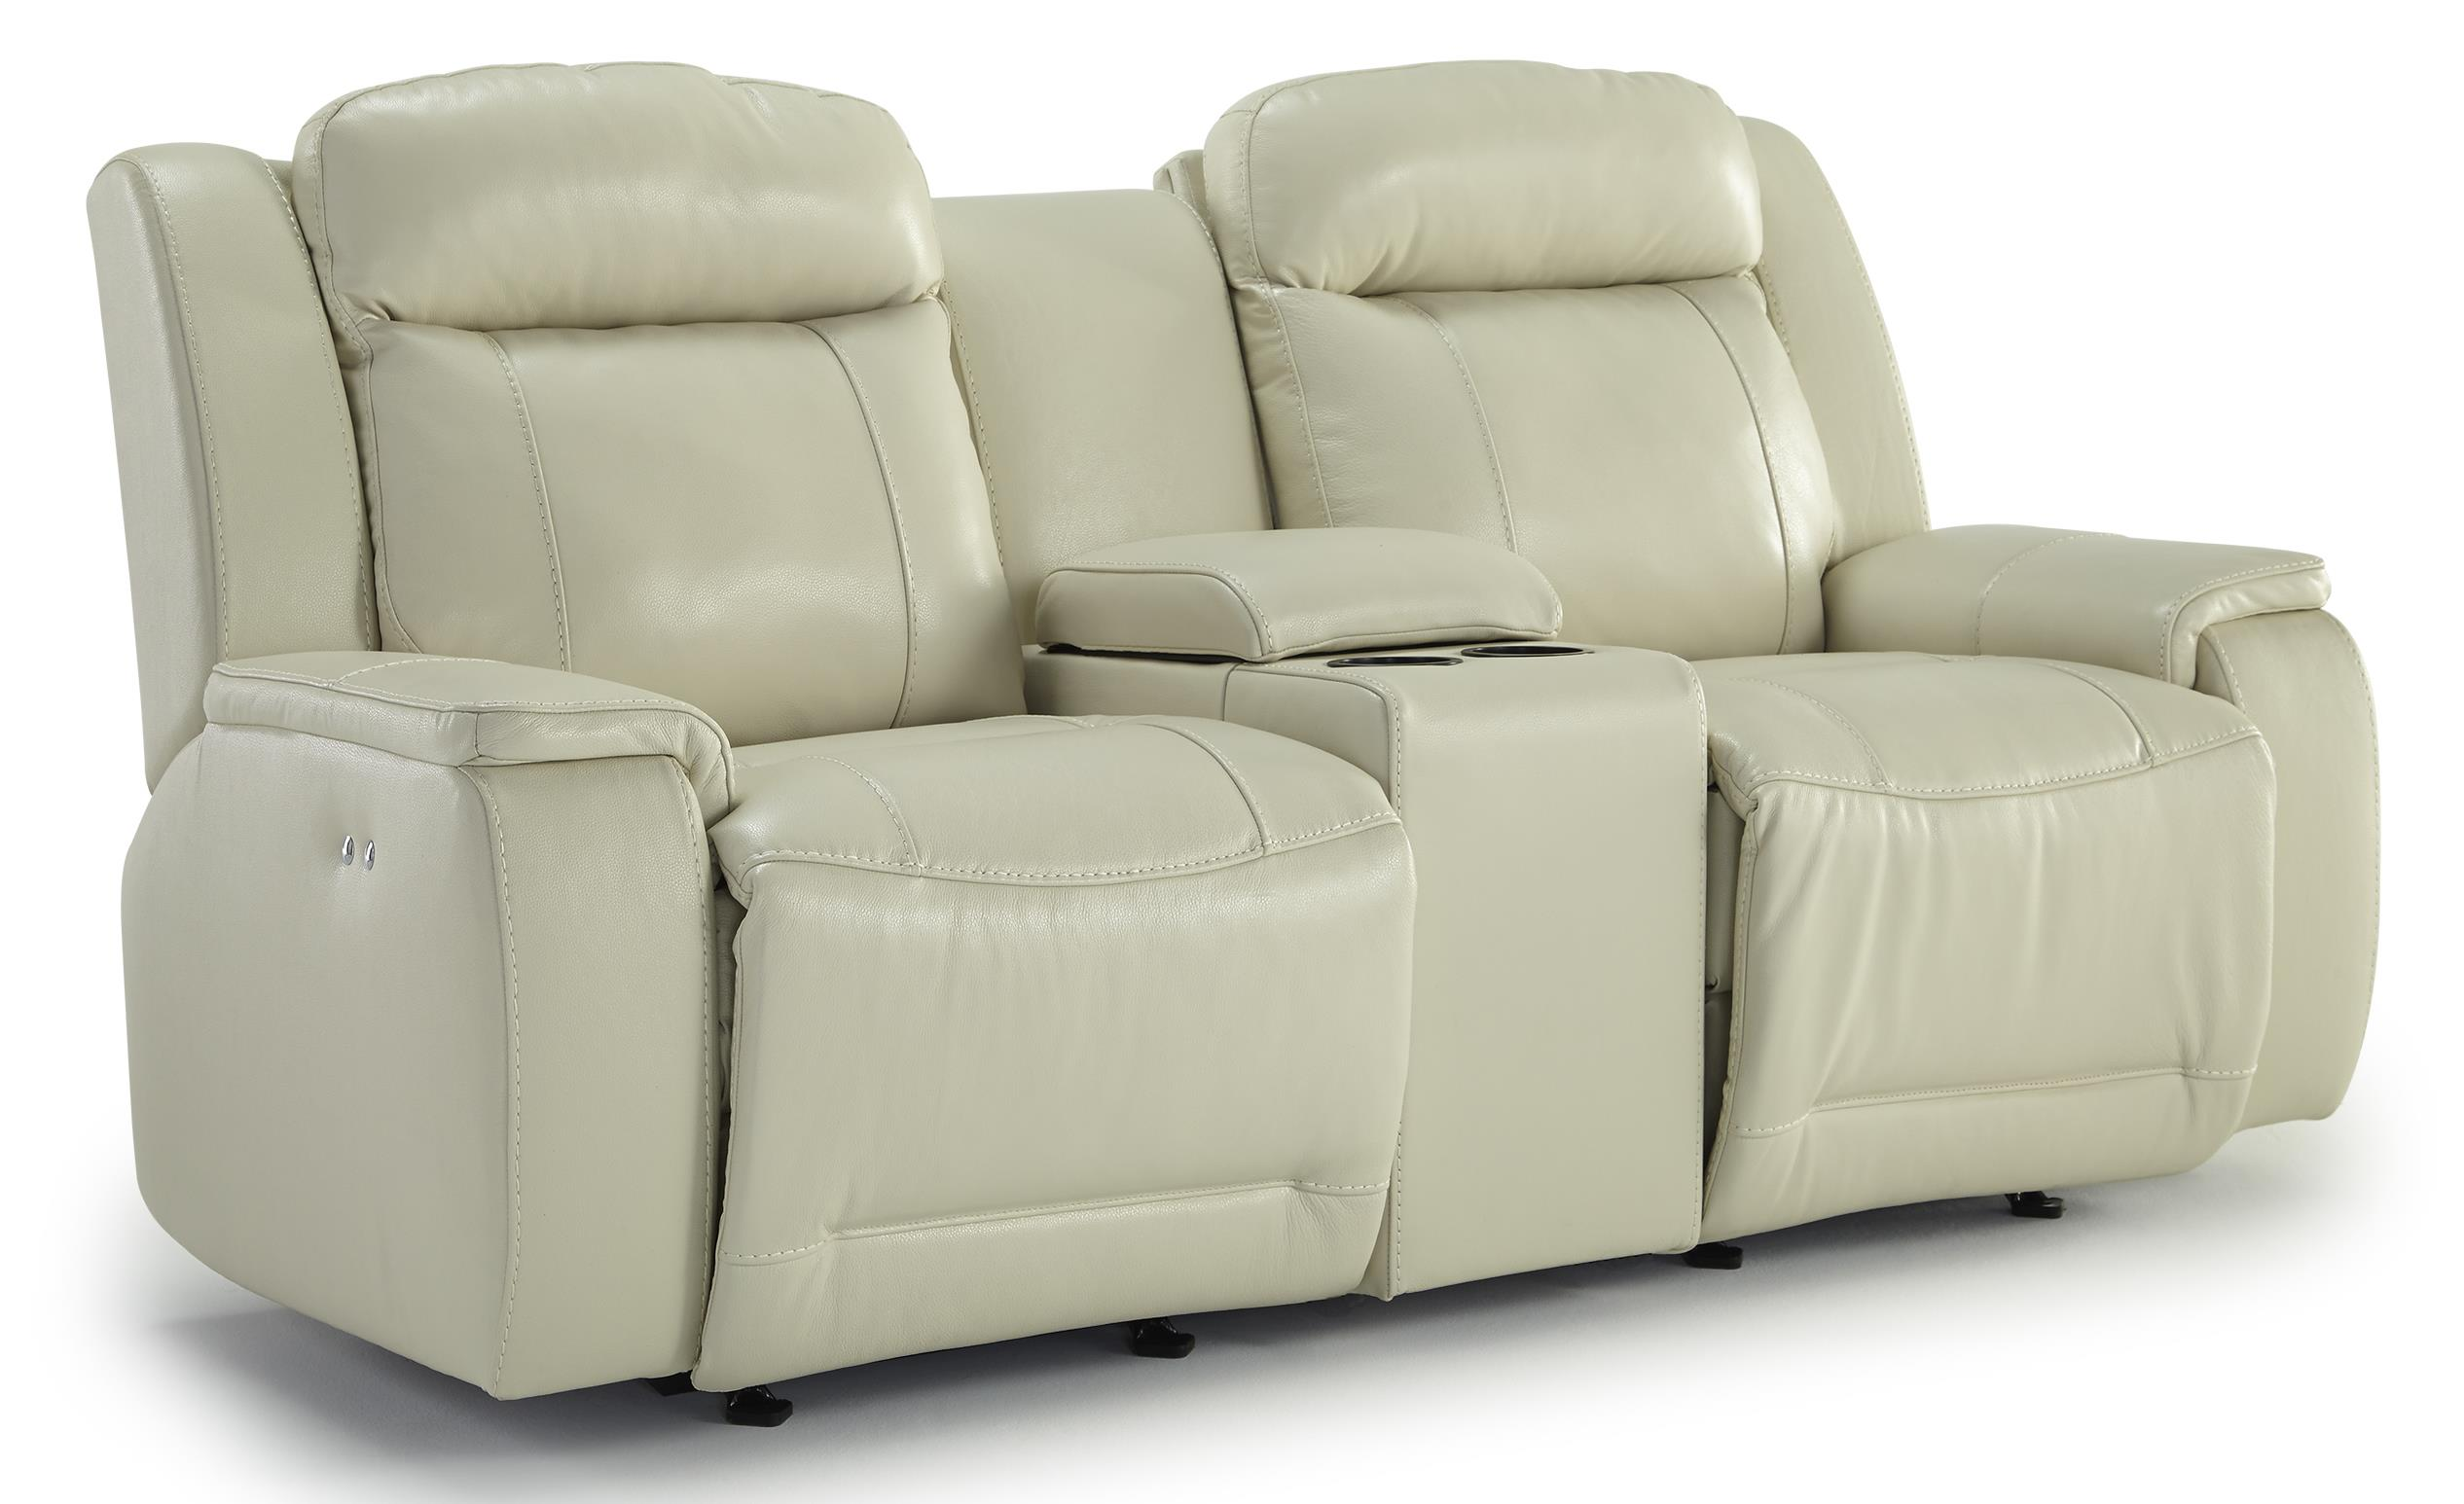 Best Home Furnishings Hardisty Space Saver Reclining Loveseat w/ Console - Item Number: L680CC4-76507LV